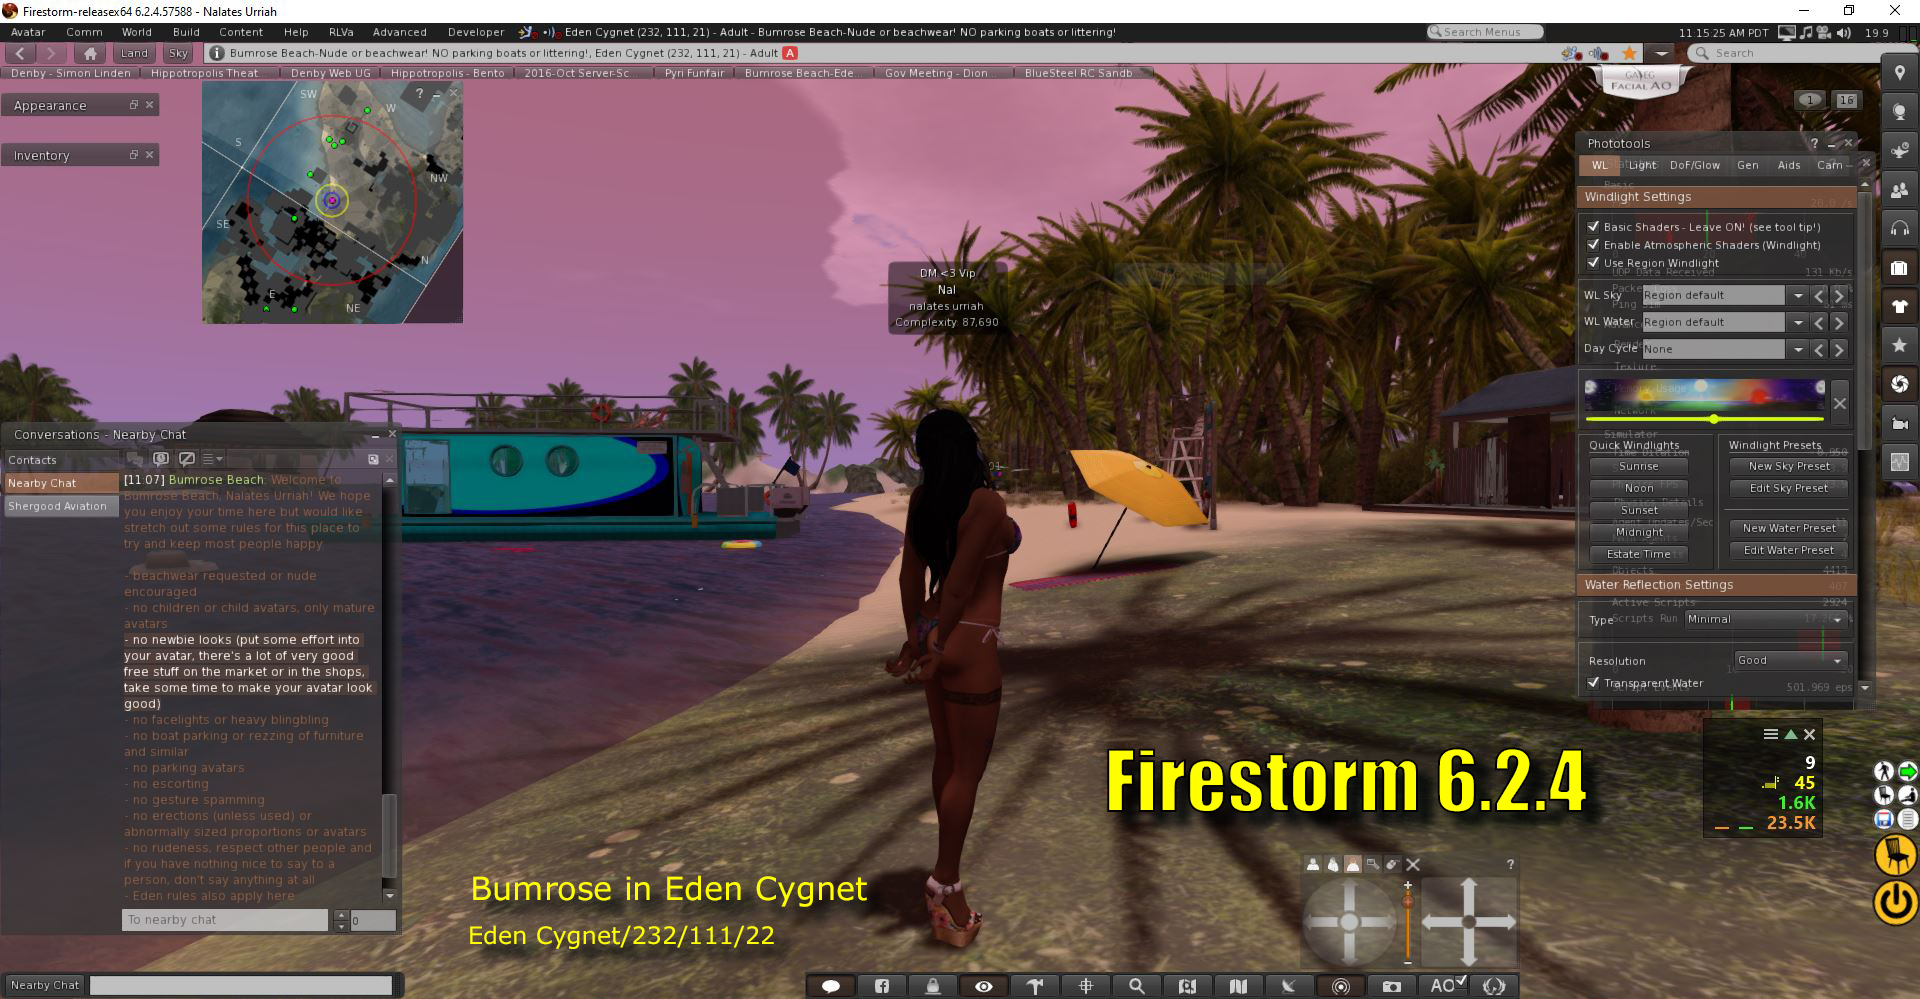 Firestorm Viewer v6 2 4 Released July 12, 2019 | Nalates